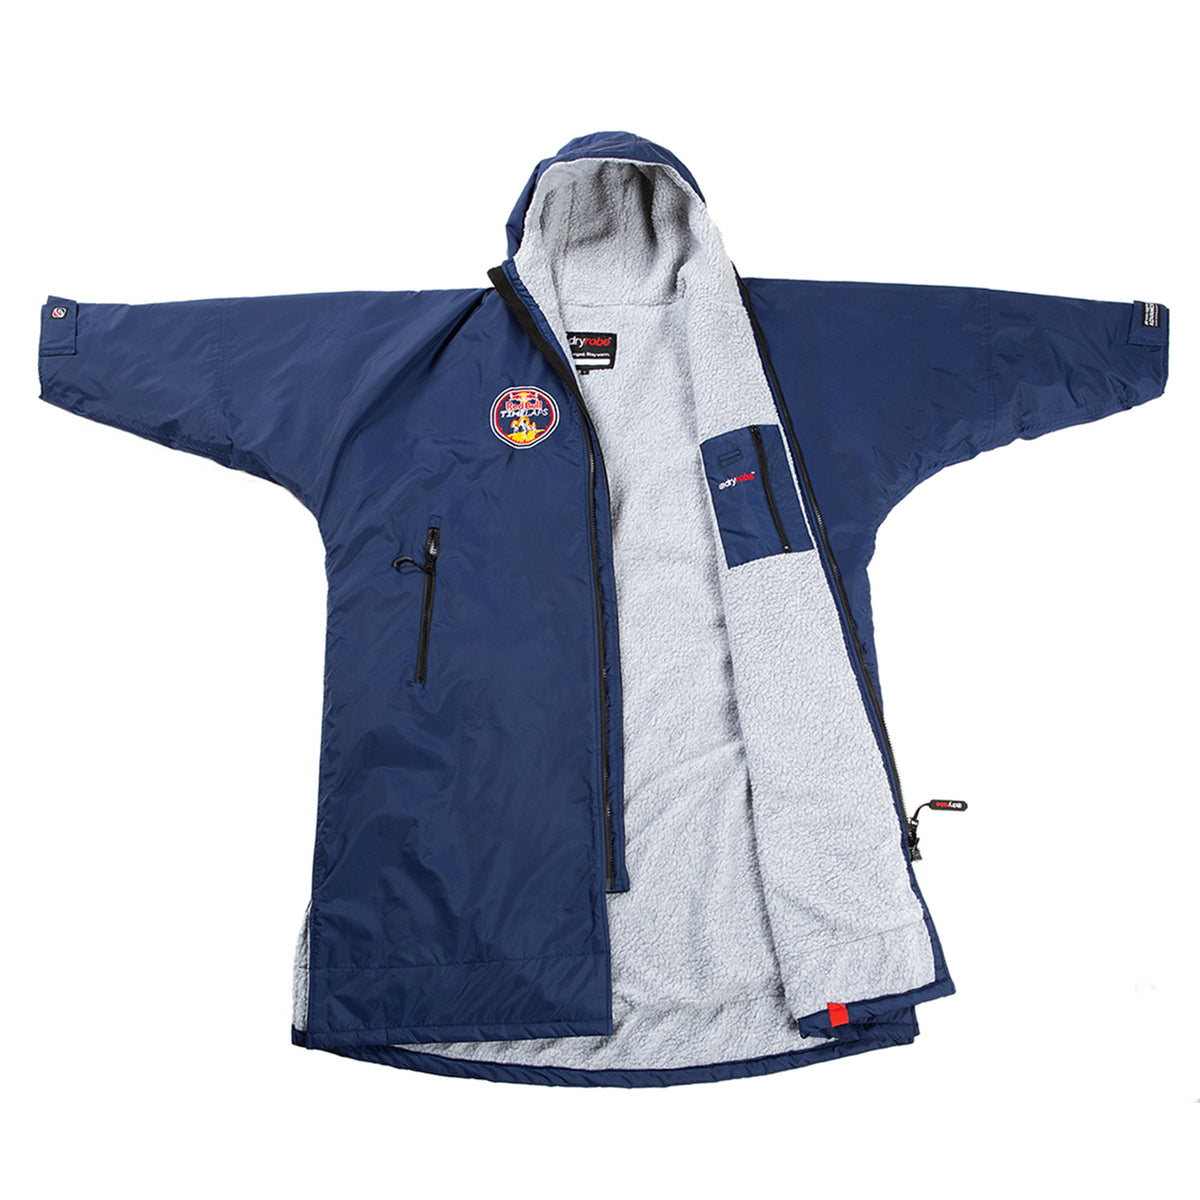 1|M,L, dryrobe Advance long sleeve Large Red Bull Time Laps dryrobe Front Open view